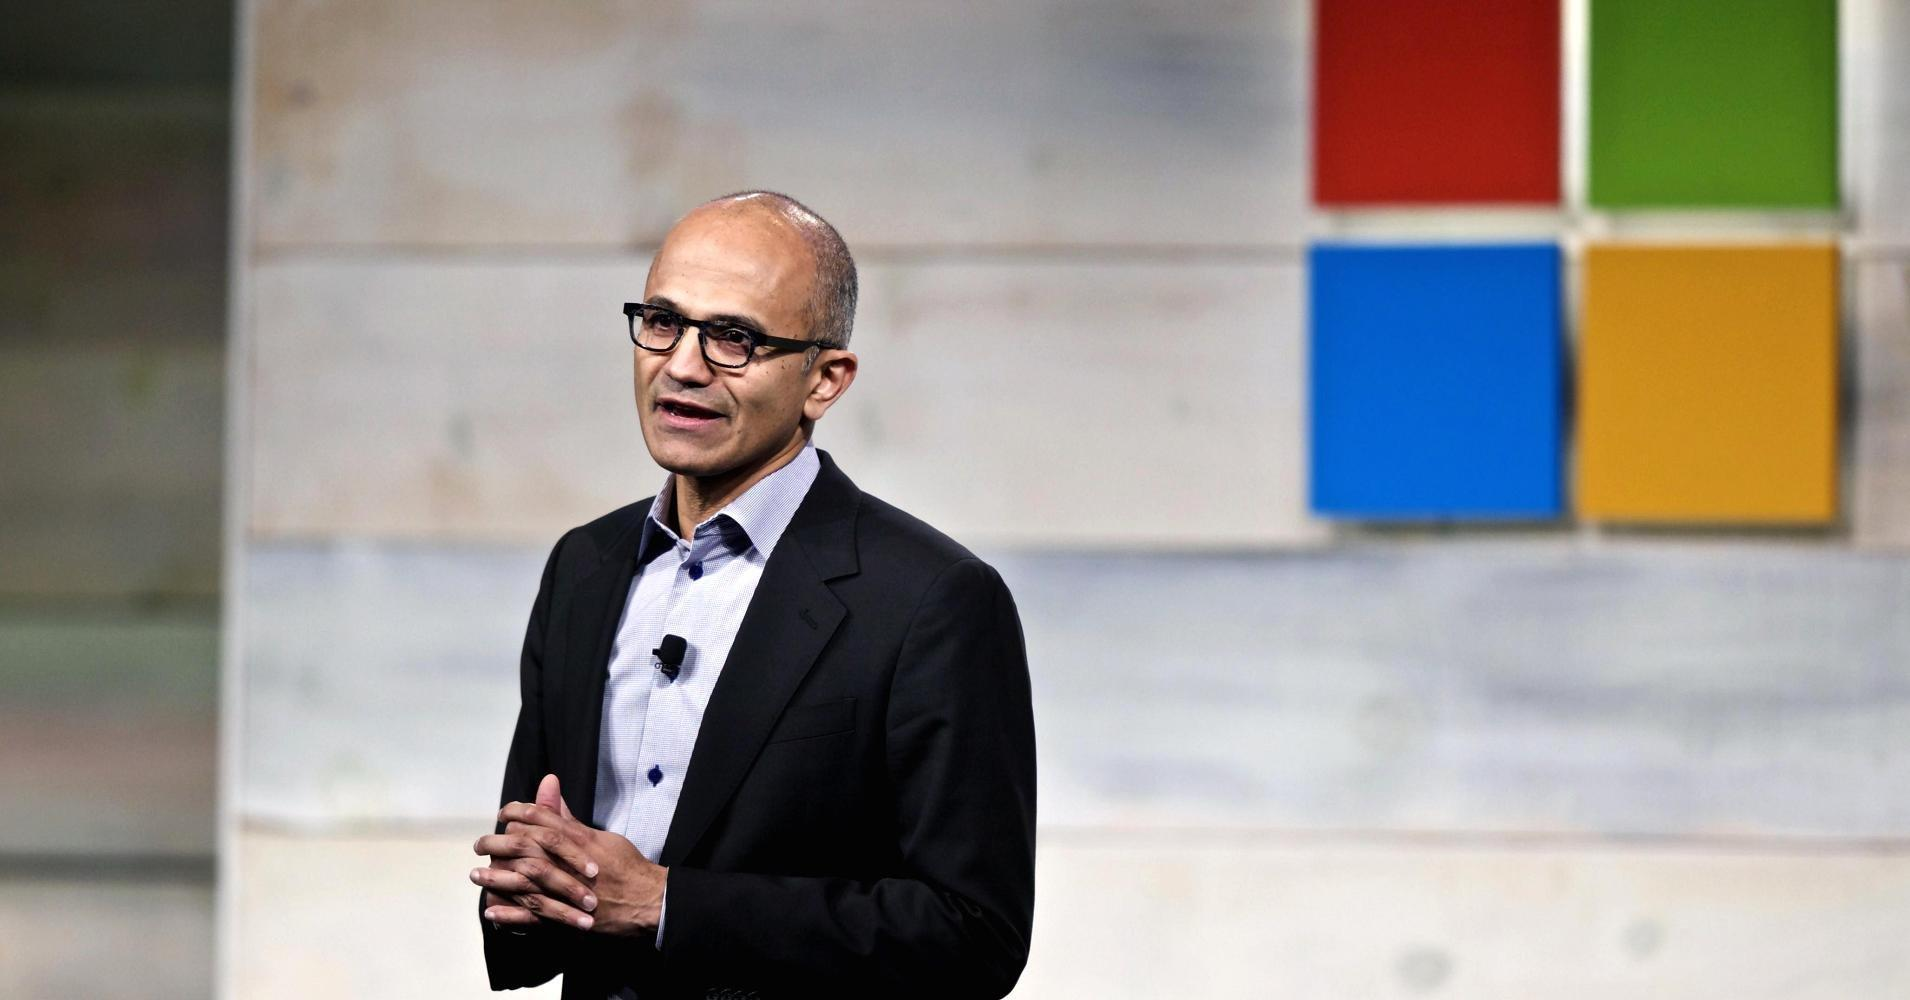 Microsoft to cut 700 jobs as part of previously announced layoffs